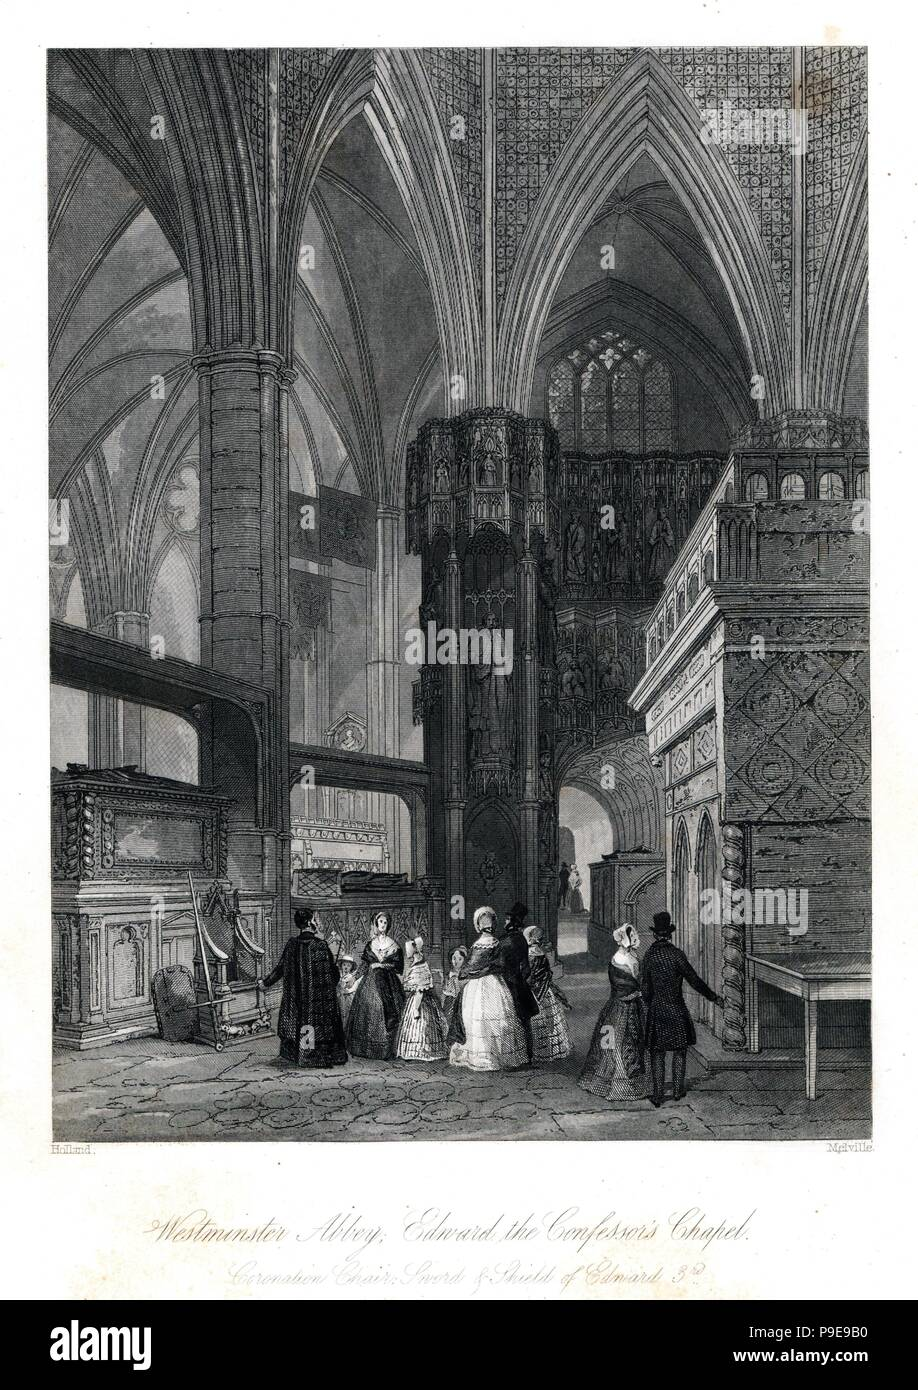 Coronation chair, sword and shield of King Edward III in Edward the Confessor's Chapel, Westminster Abbey. Steel engraving by Henry Melville after an illustration by Holland from London Interiors, Their Costumes and Ceremonies, Joshua Mead, London, 1841. - Stock Image